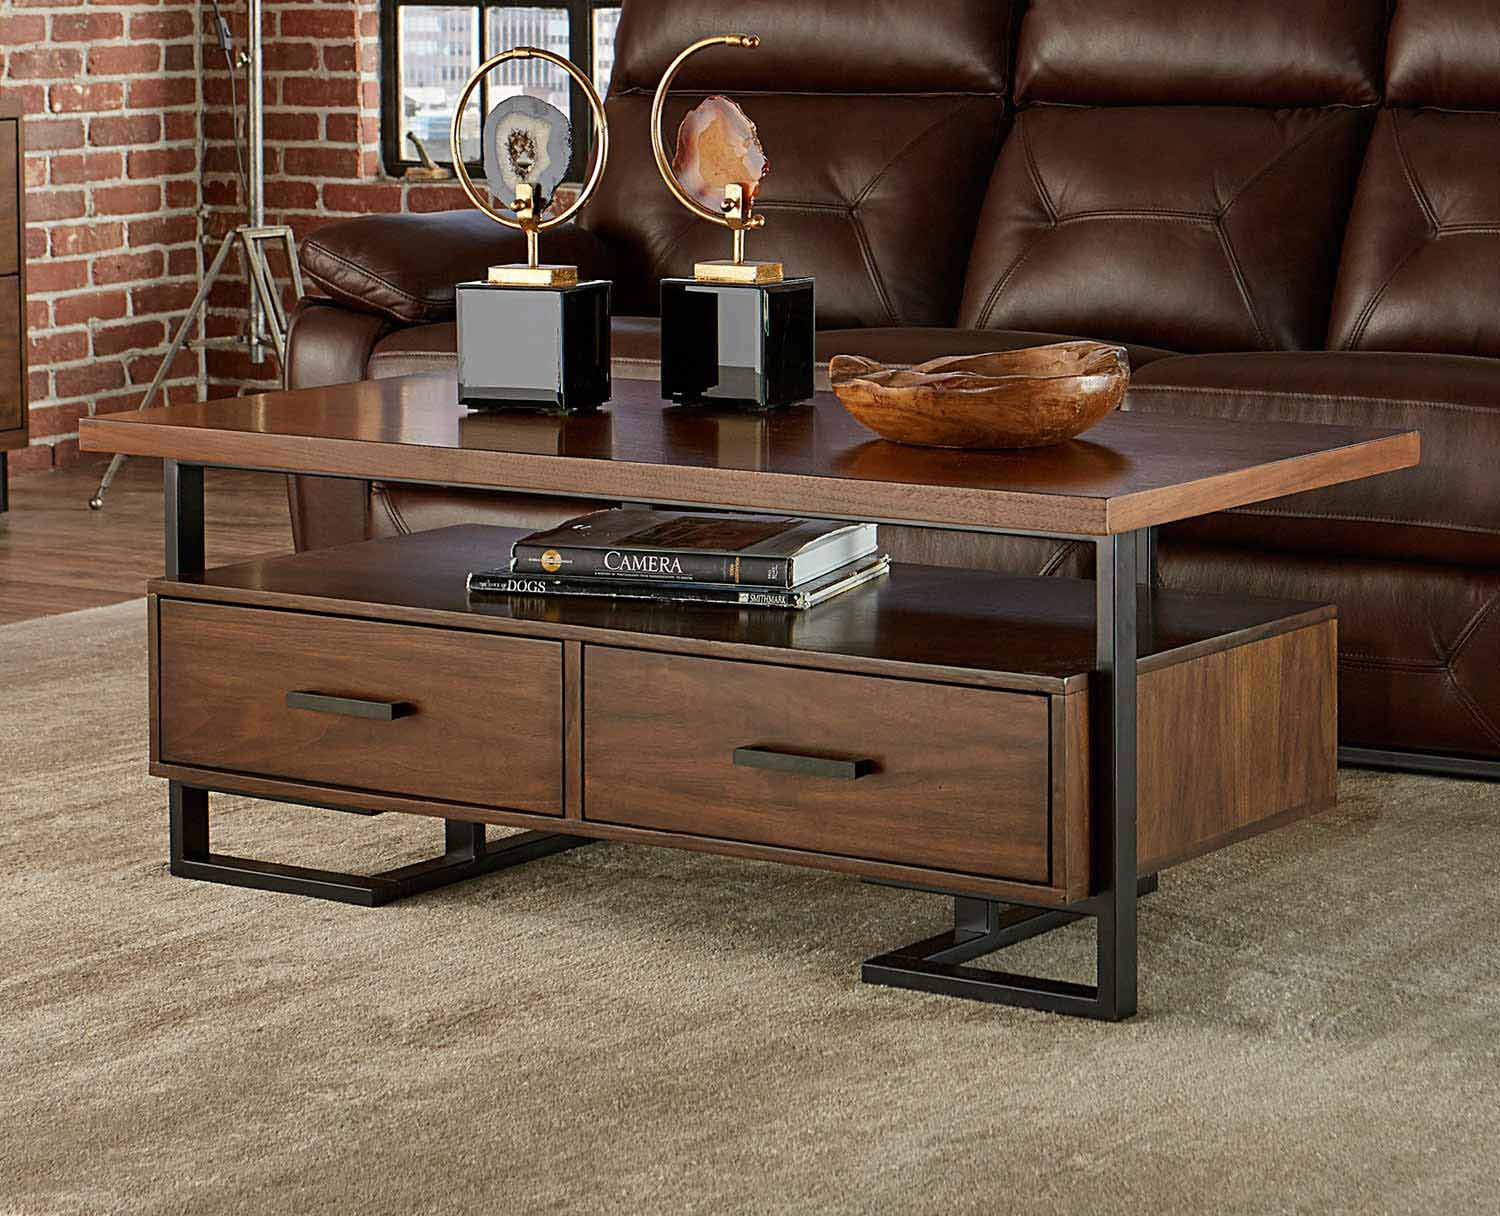 Homelegance Sedley Cocktail/Coffee Table with Two Functional Drawers - Walnut Veneer